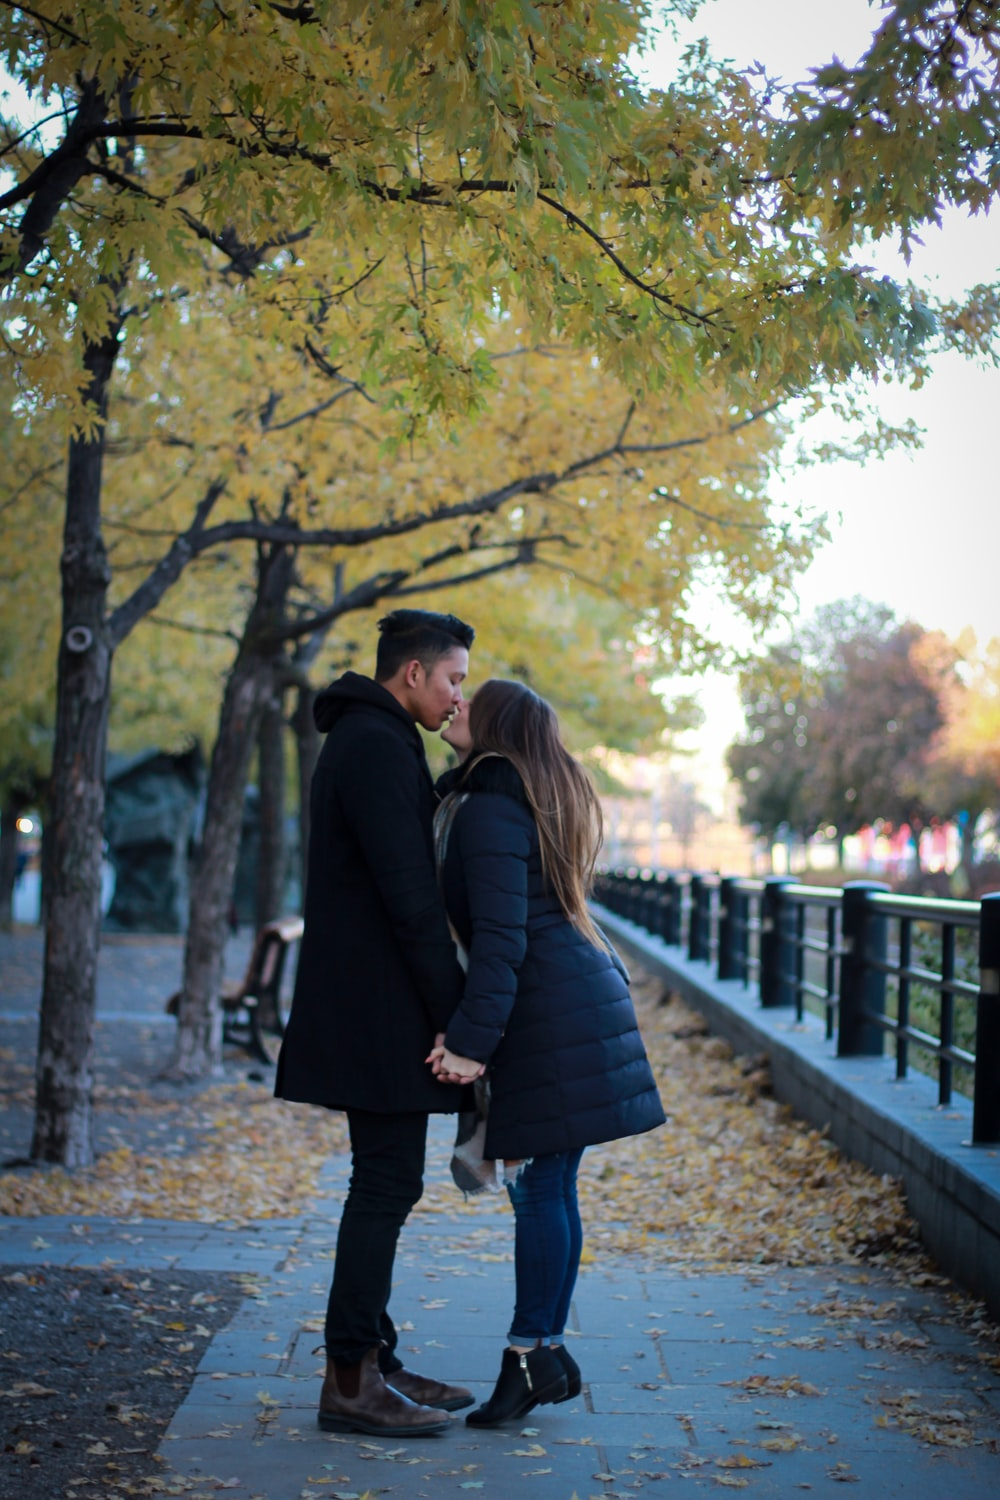 couple kissing in park under green leafed tree